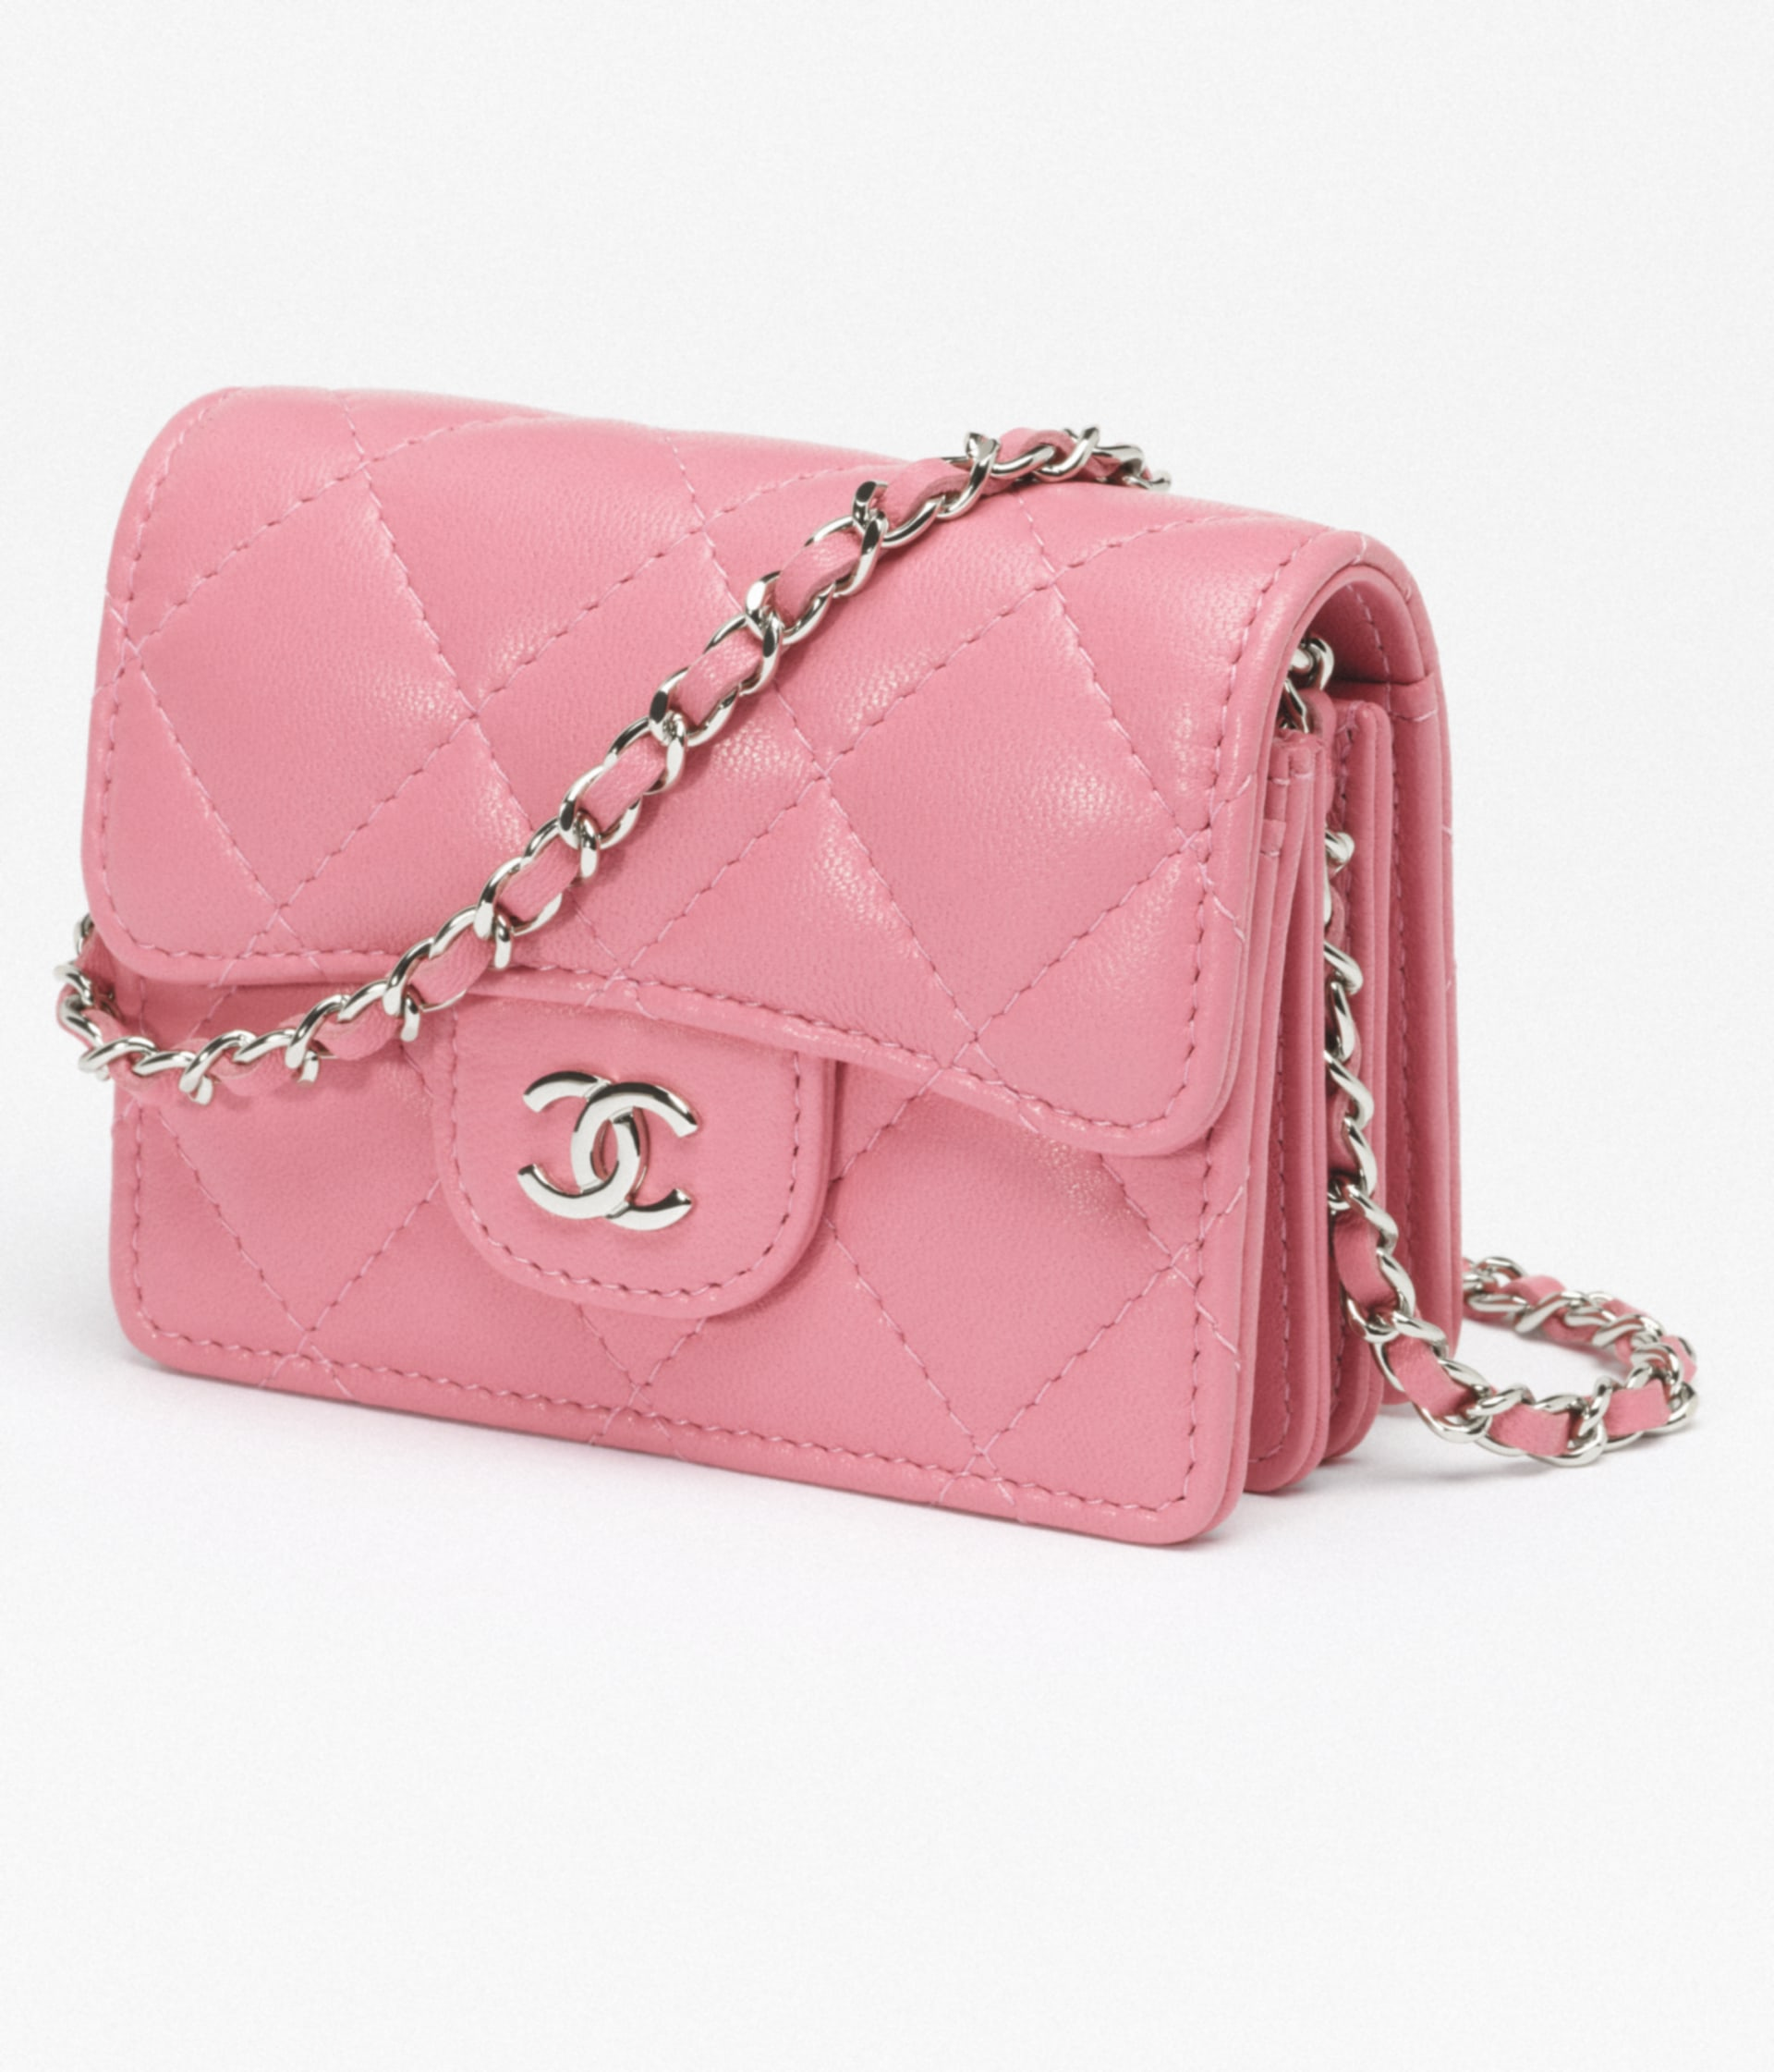 image 4 - Classic Flap Card Holder with Chain - Lambskin & Silver-Tone Metal - Light Pink